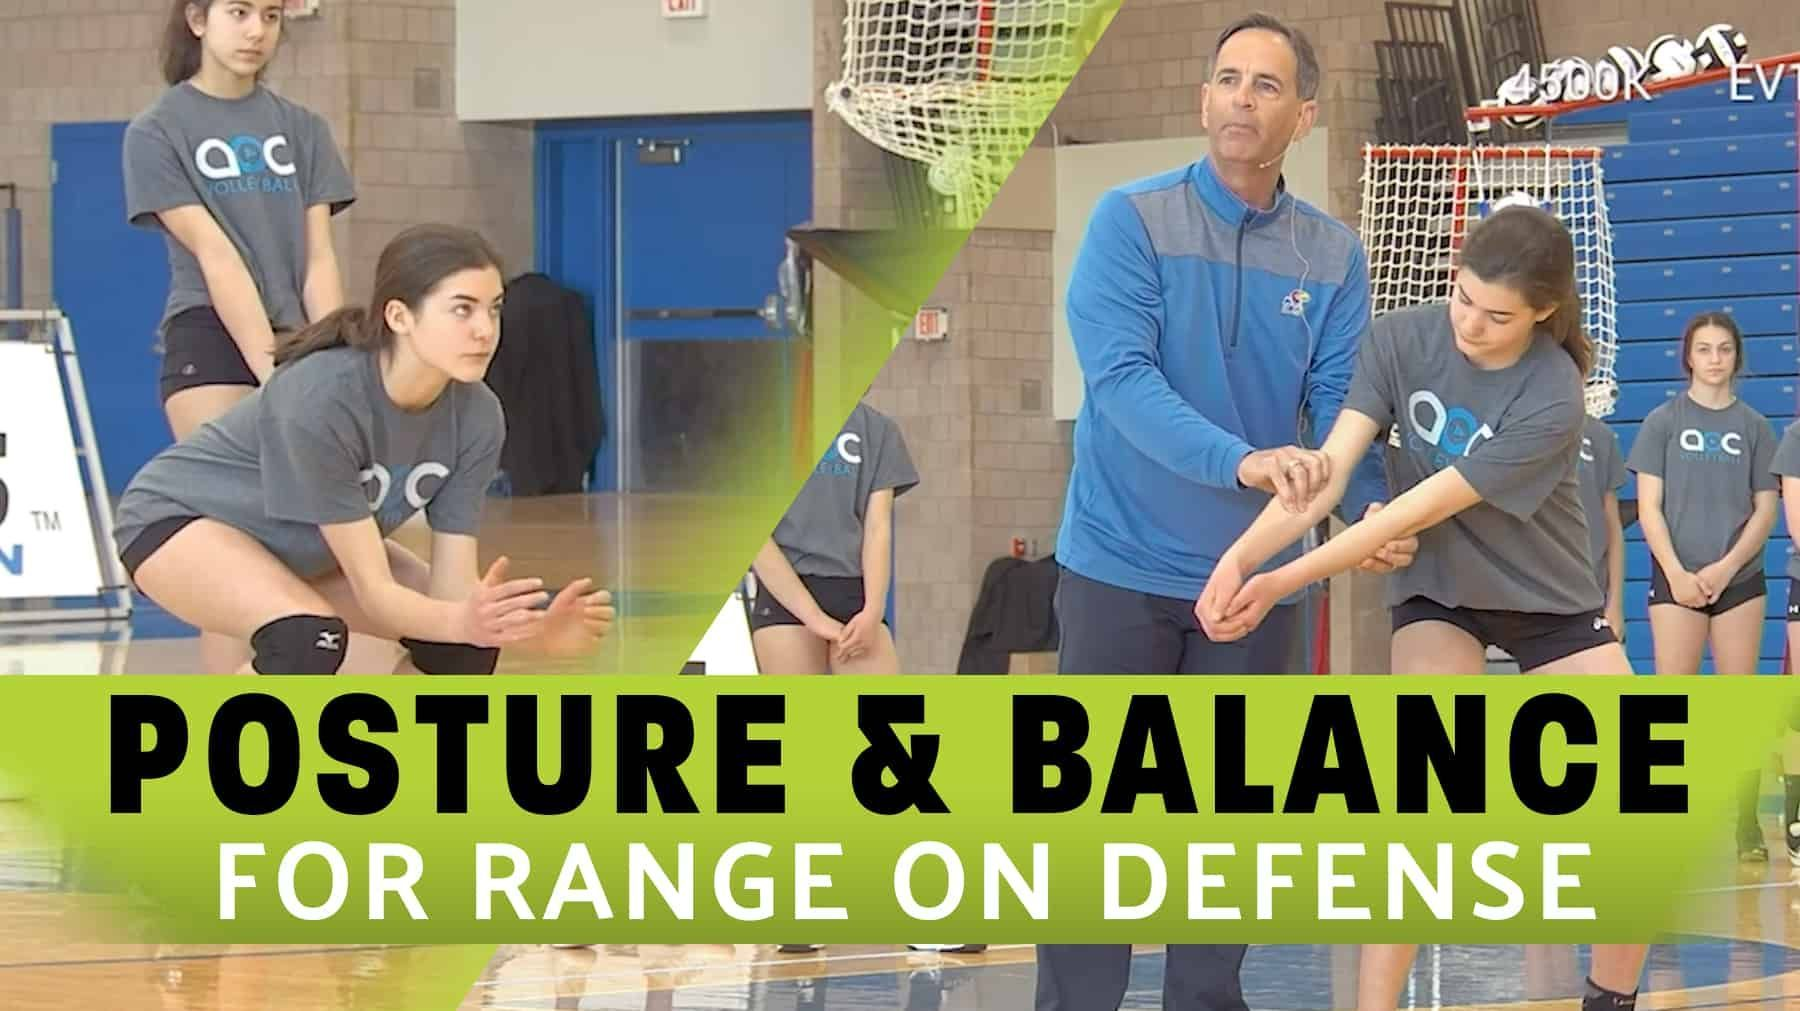 Posture Balance For Range On Defense Coaching Volleyball Volleyball Drills Postures